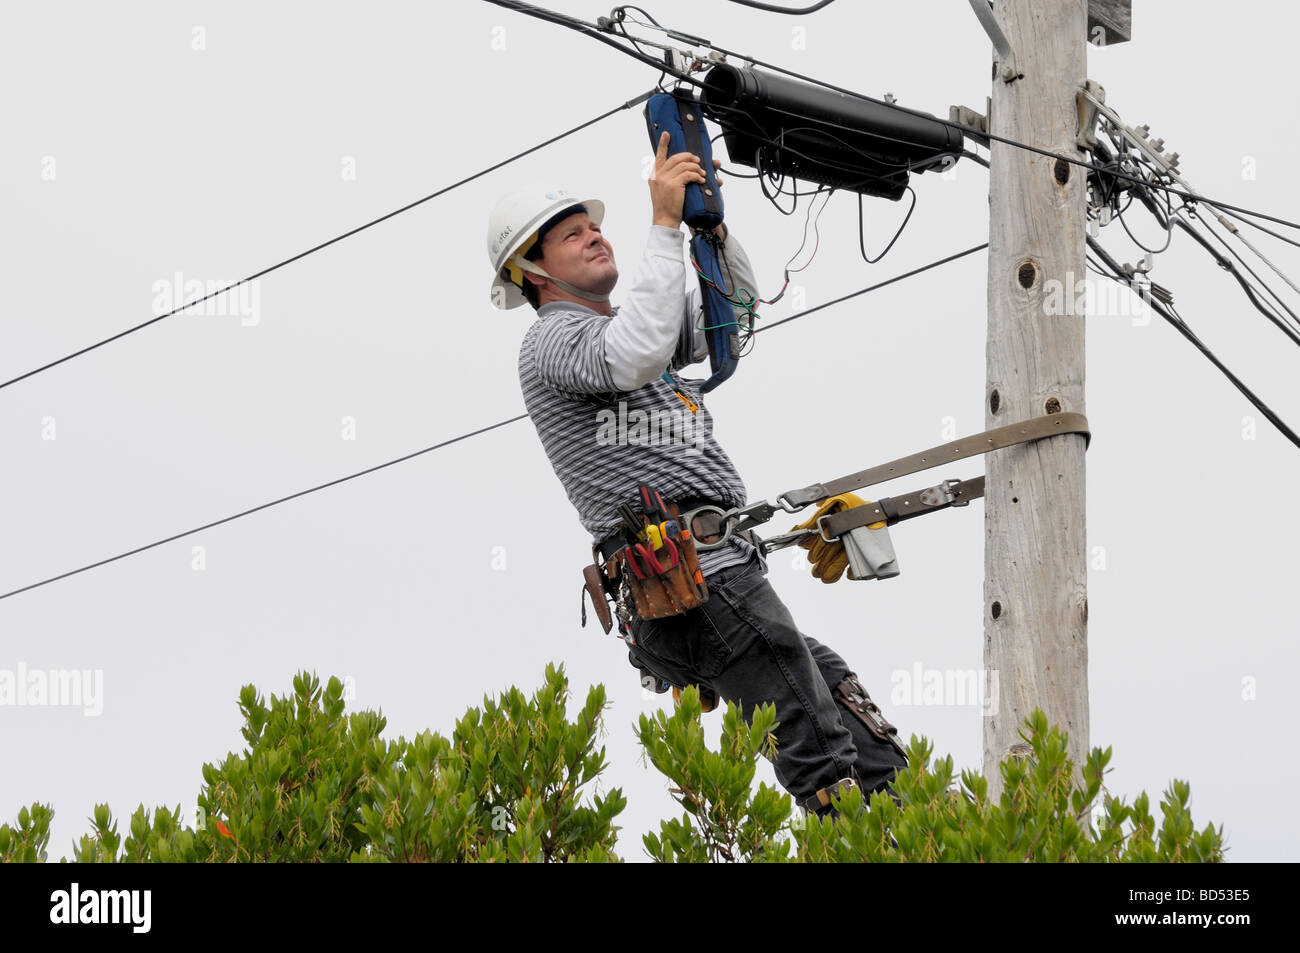 A telephone linesman makes a repair suspended in a harness on a pole